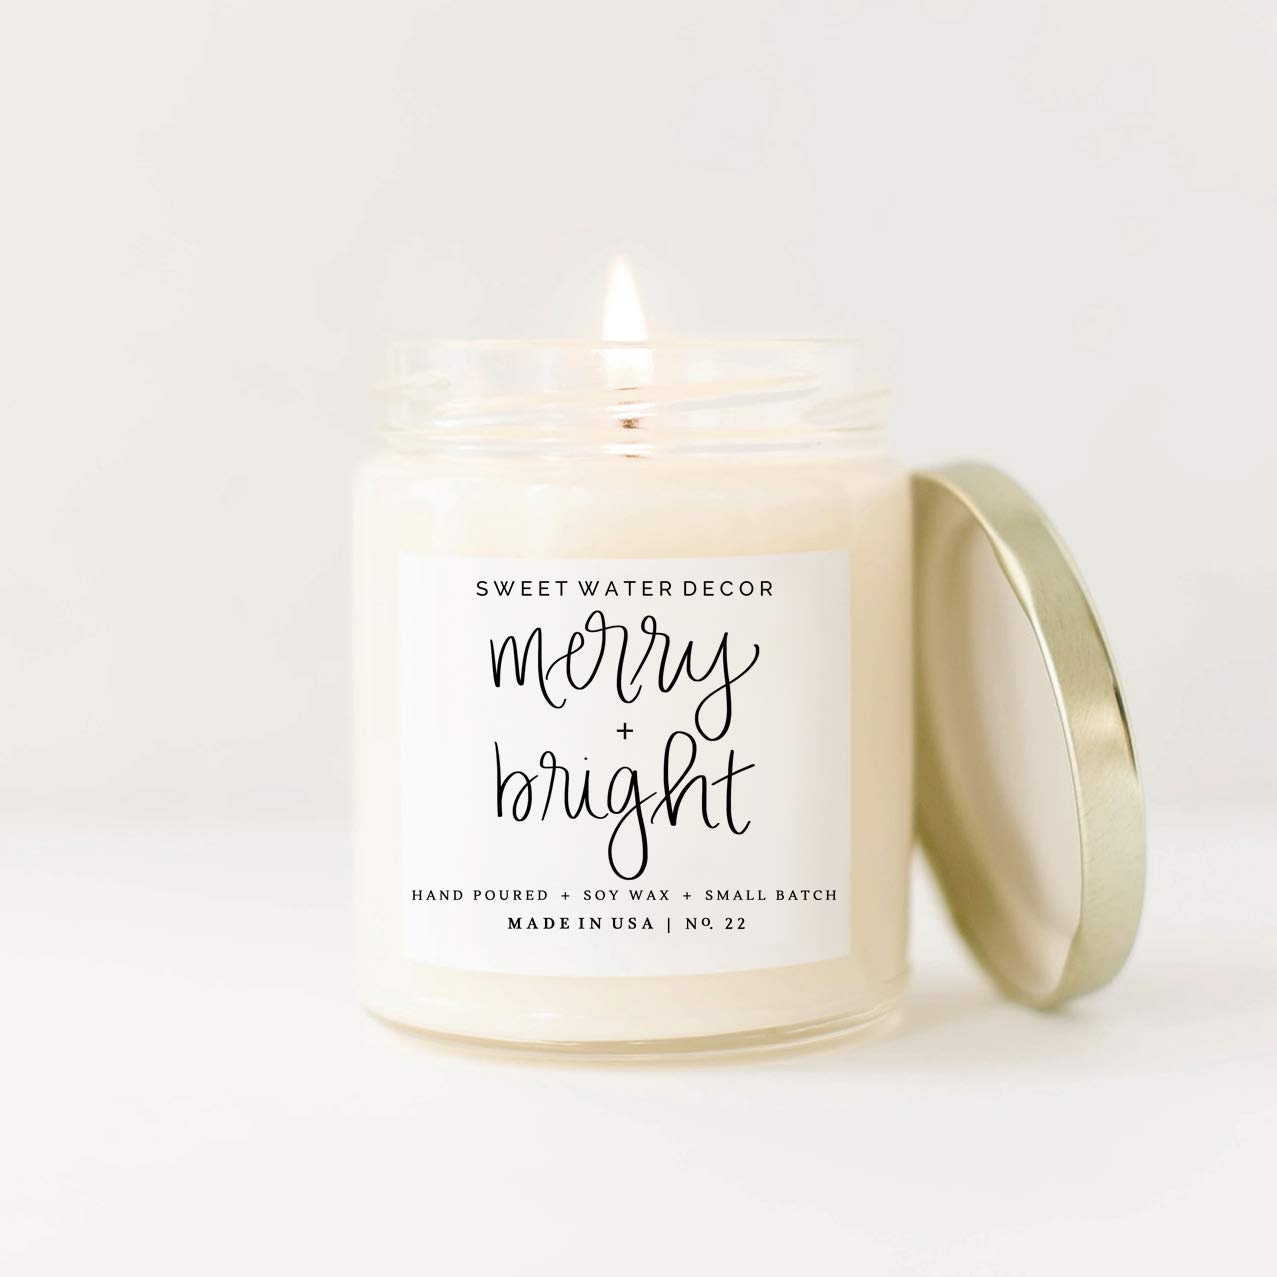 Merry and Bright Soy Wax Candle Glass Jar Scented Bayberry Cypress Cedar Balsam Fir Musk Fireplace Christmas Tree Holiday Home Fragrance Clove Nutmeg Ginger Tree Made in USA Stocking Stuffer Gift